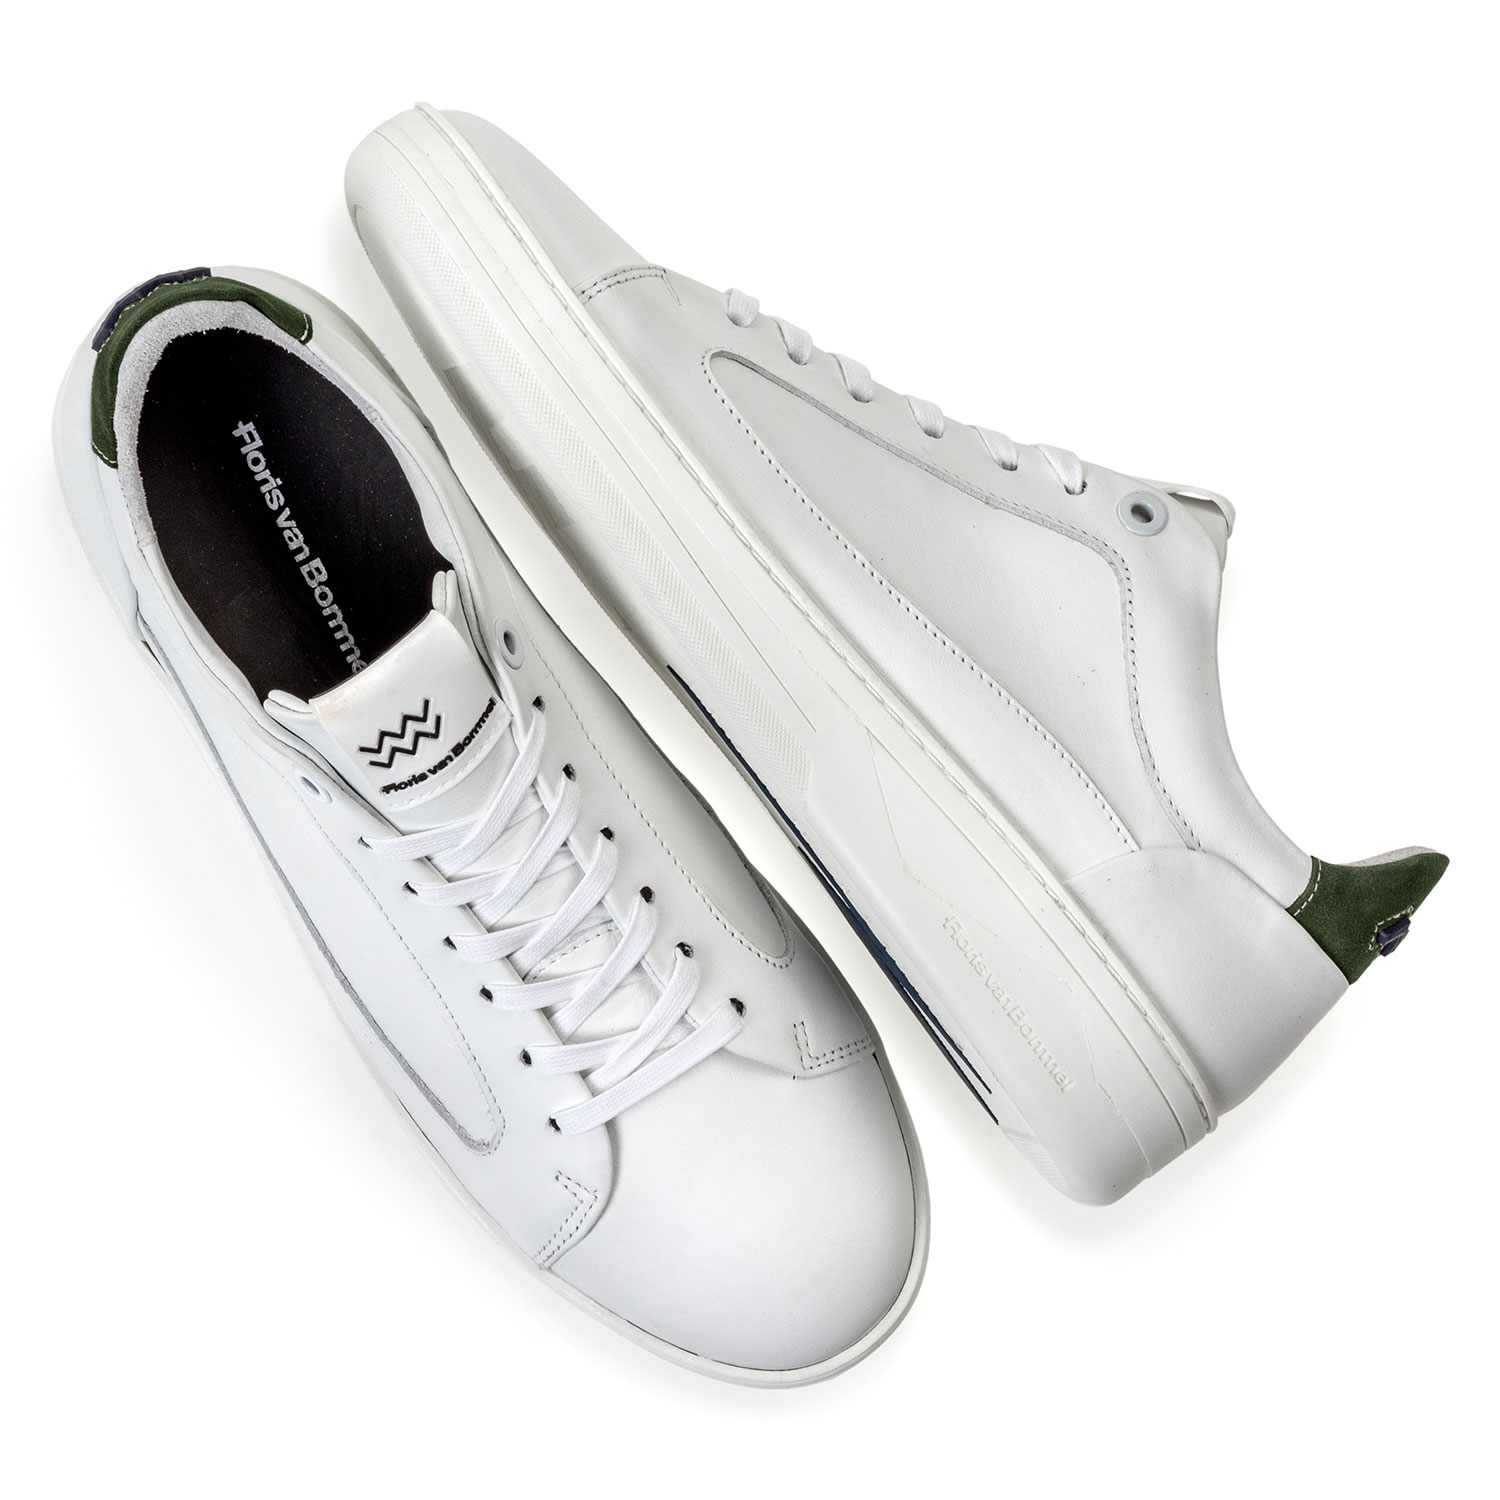 13265/26 - Sneaker white leather